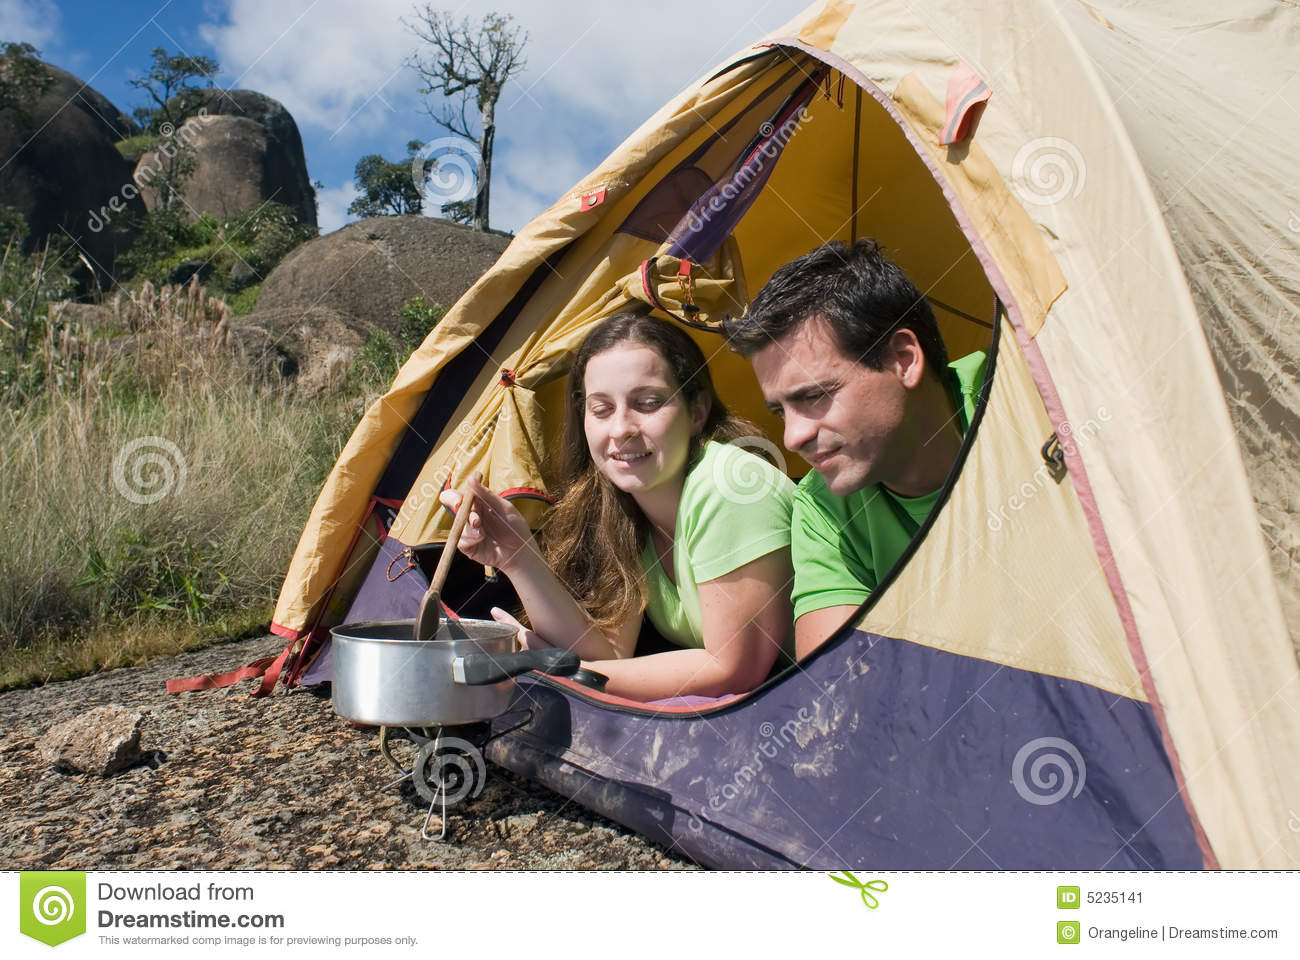 Royalty-Free Stock Photo  sc 1 st  Dreamstime.com & Couple Camping In Tent Cooking Stock Image - Image: 5235141